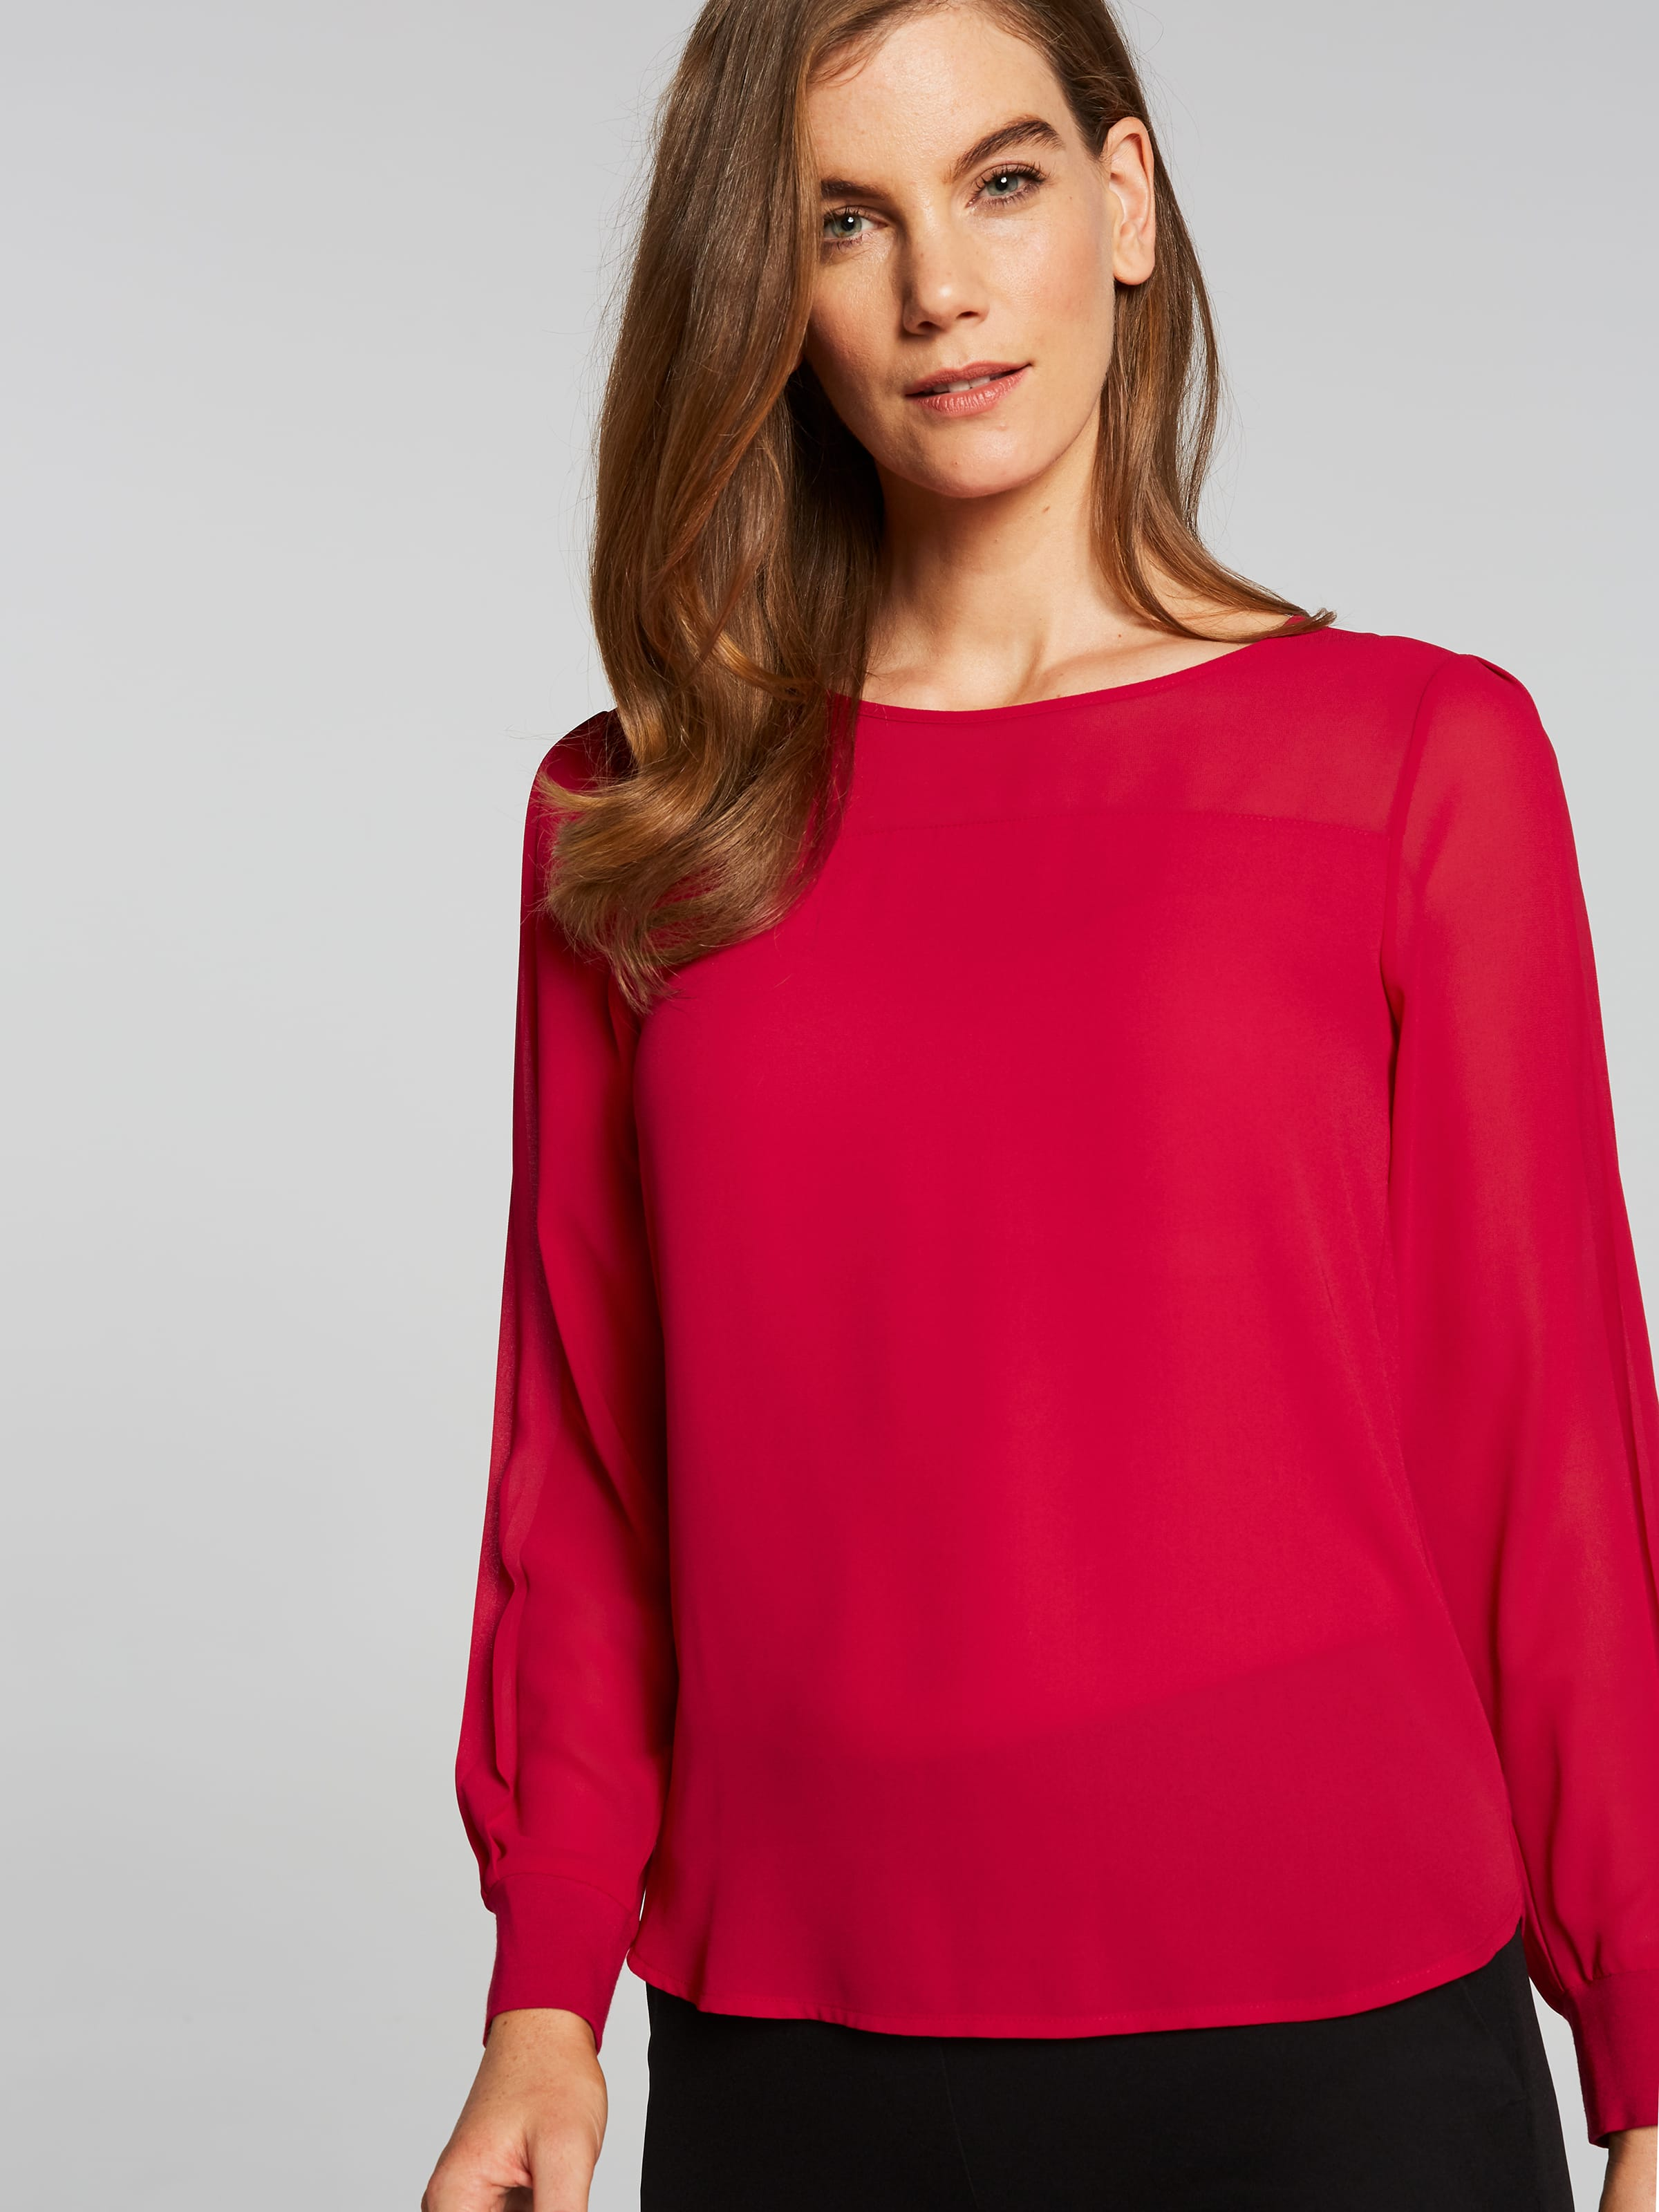 Long Sleeve Oprah Top